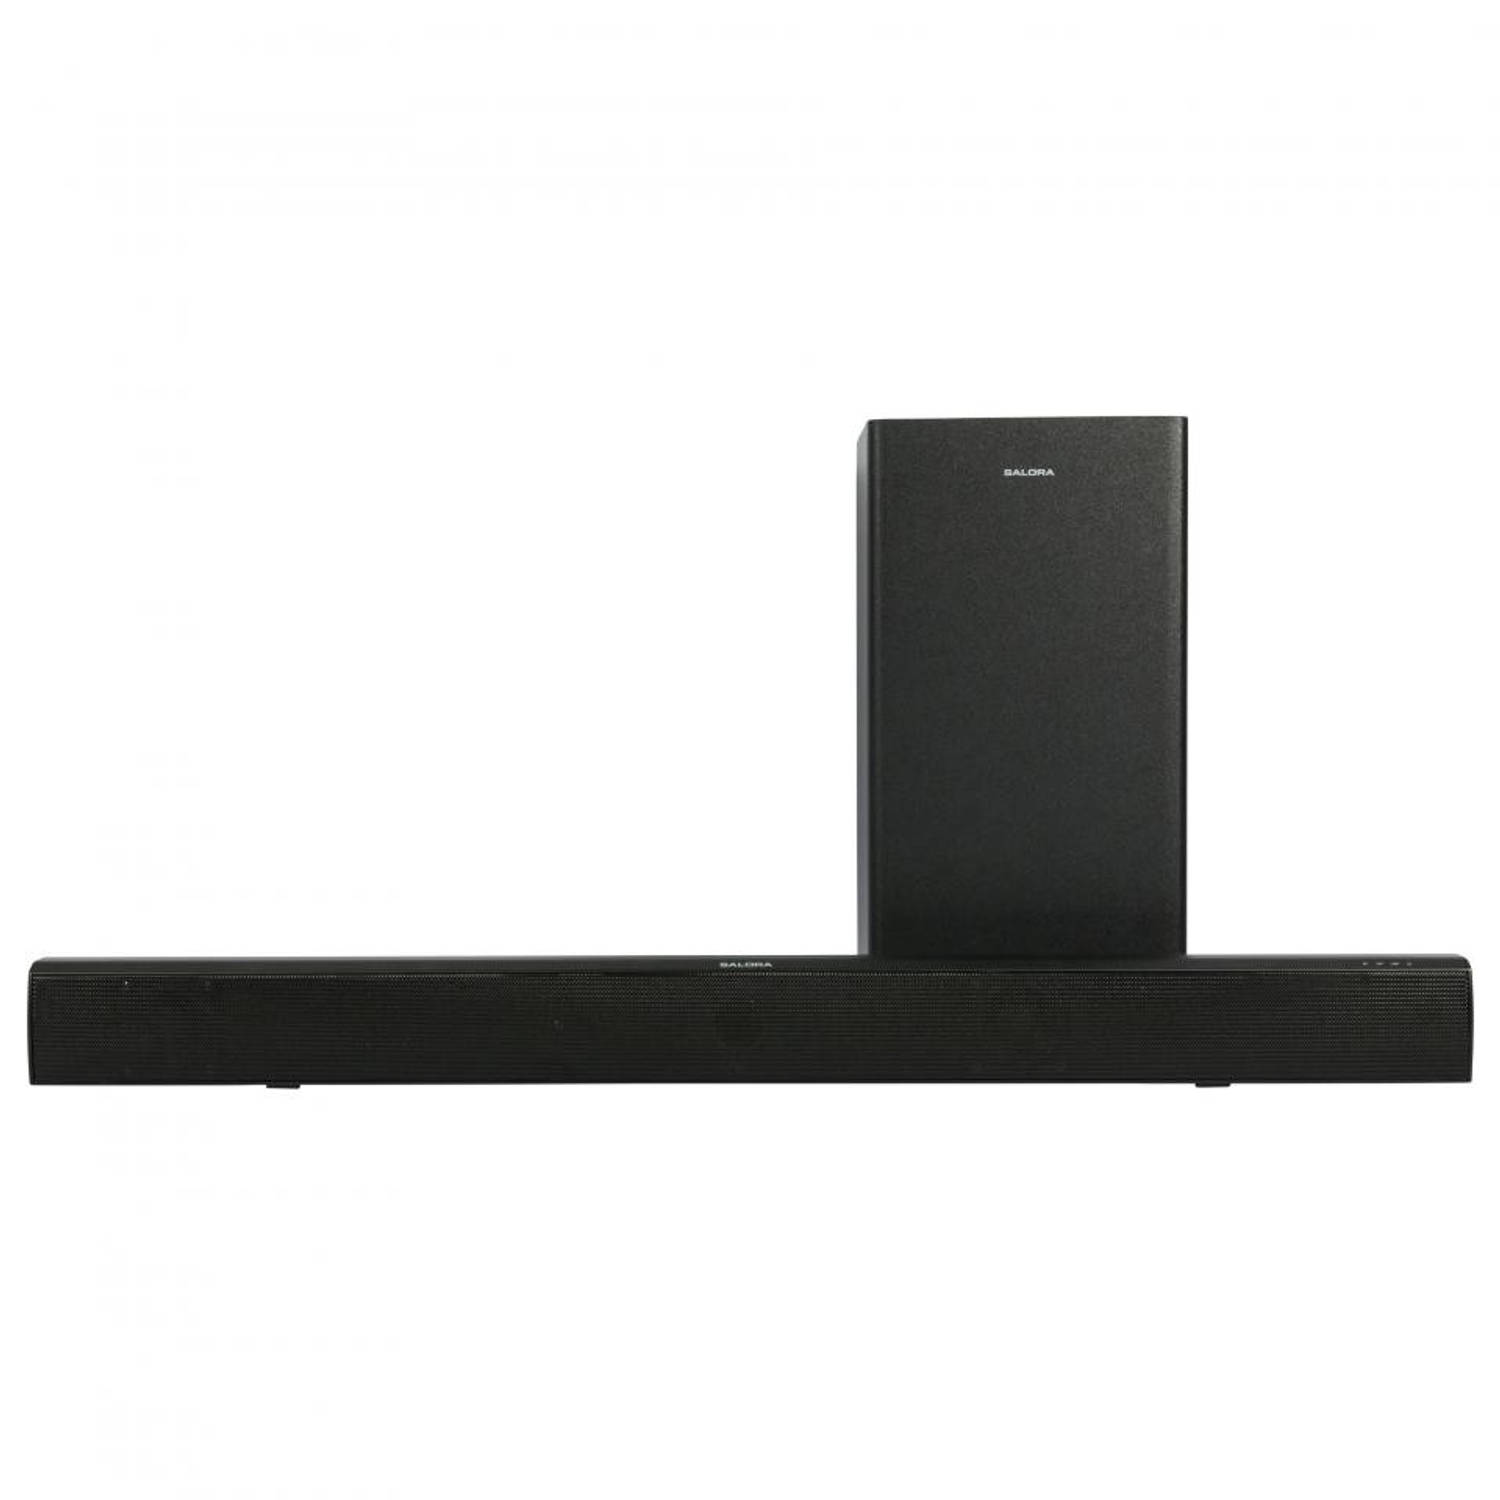 Salora soundbar SB0880